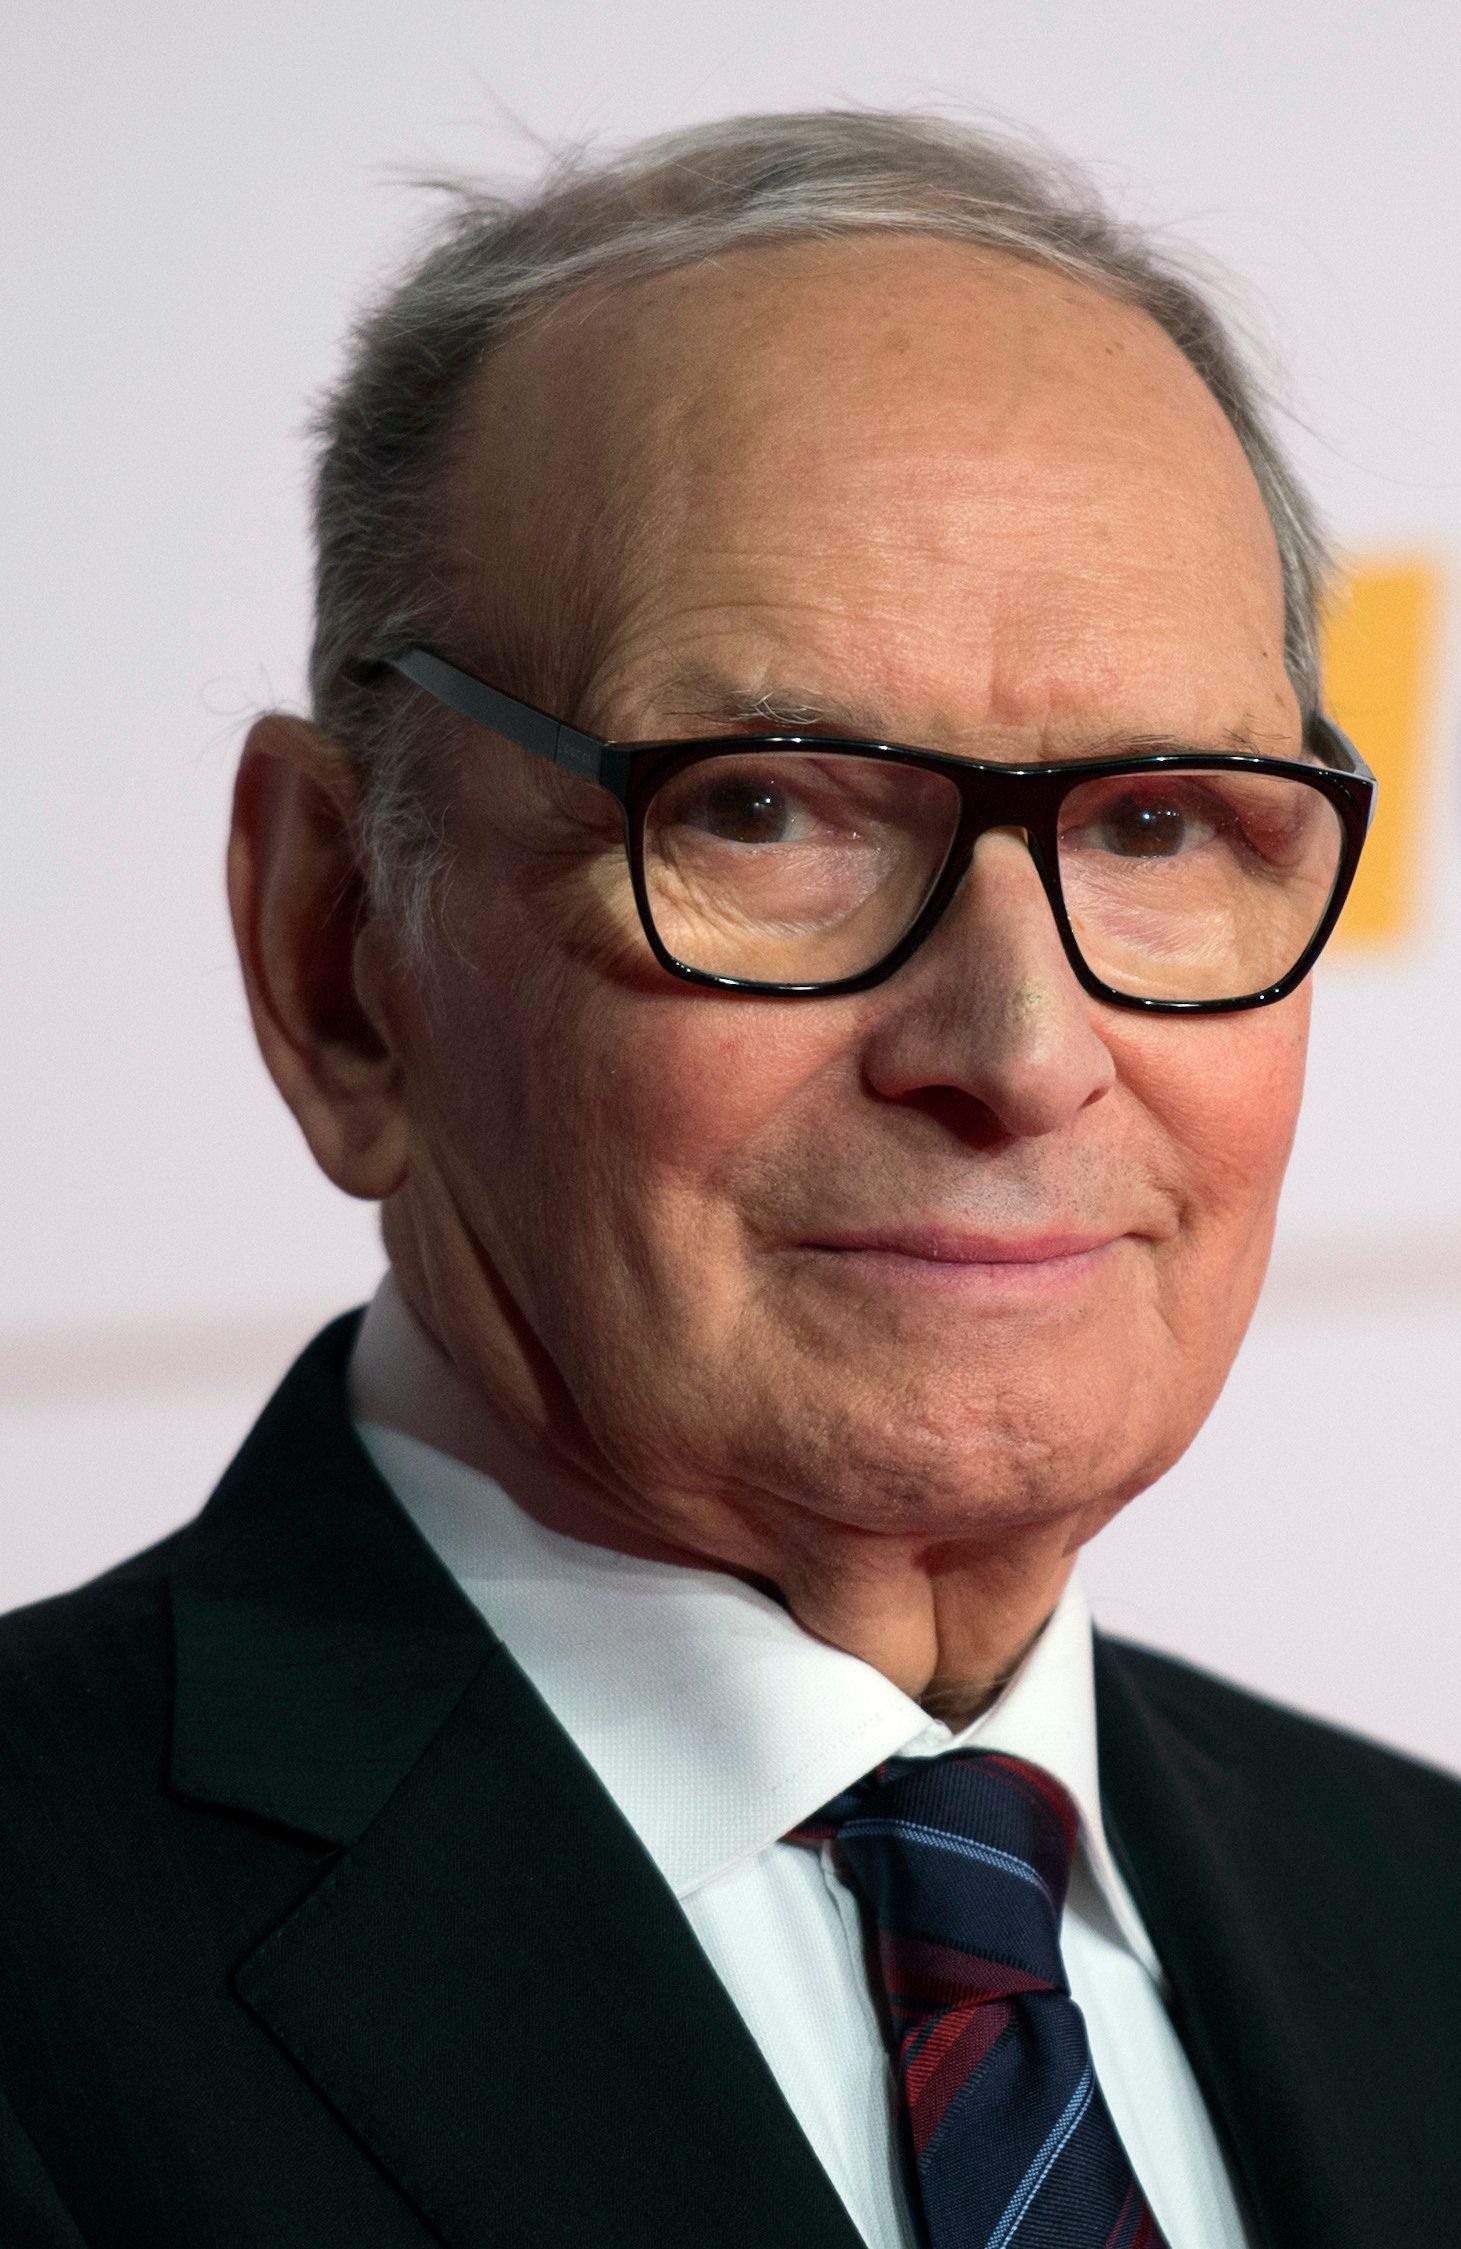 Italian film composer Ennio Morricone poses for photographers as he arrives at the 26th European Film Awards ceremony on December 7, 2013 in Berlin. Every year, the various activities of the European Film Academy culminate in the ceremony of the European Film Awards. In a total of 21 categories, among them European Film, European Director, European Actress and European Actor, the European Film Awards annually honour the greatest achievements in European cinema. AFP PHOTO / JOHANNES EISELE        (Photo credit should read JOHANNES EISELE/AFP/Getty Images)